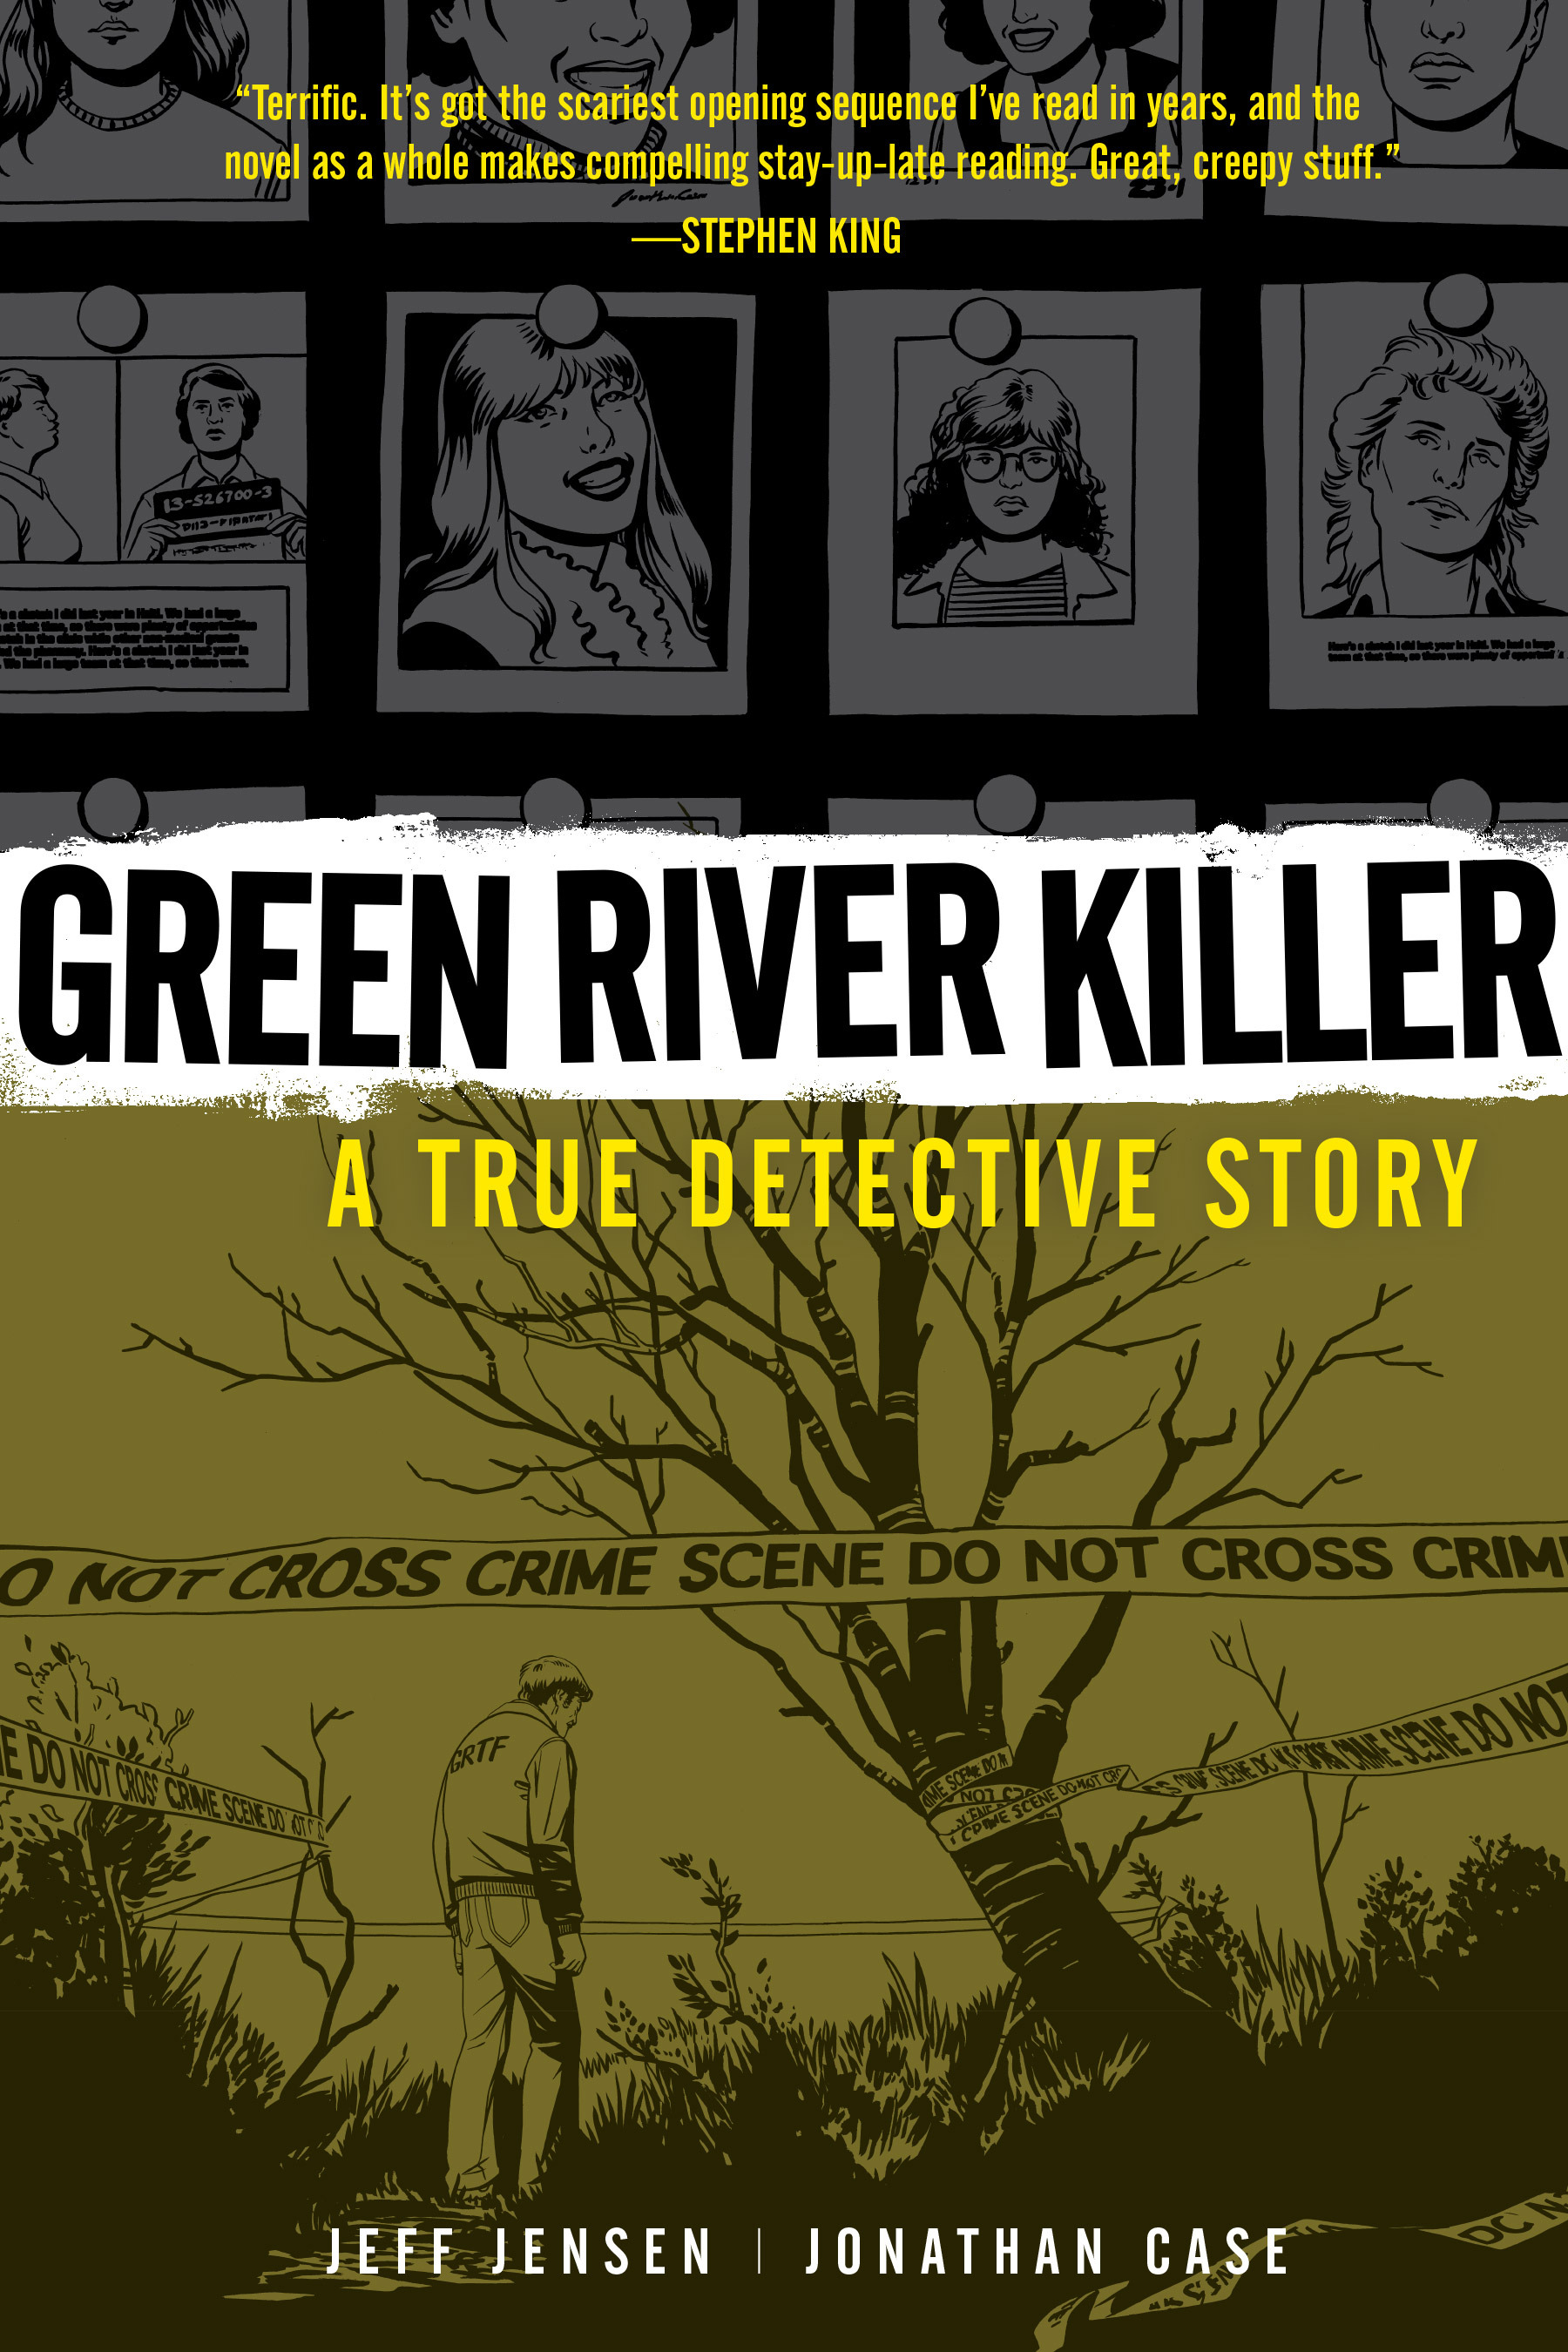 Read online Green River Killer: A True Detective Story comic -  Issue # TPB - 1